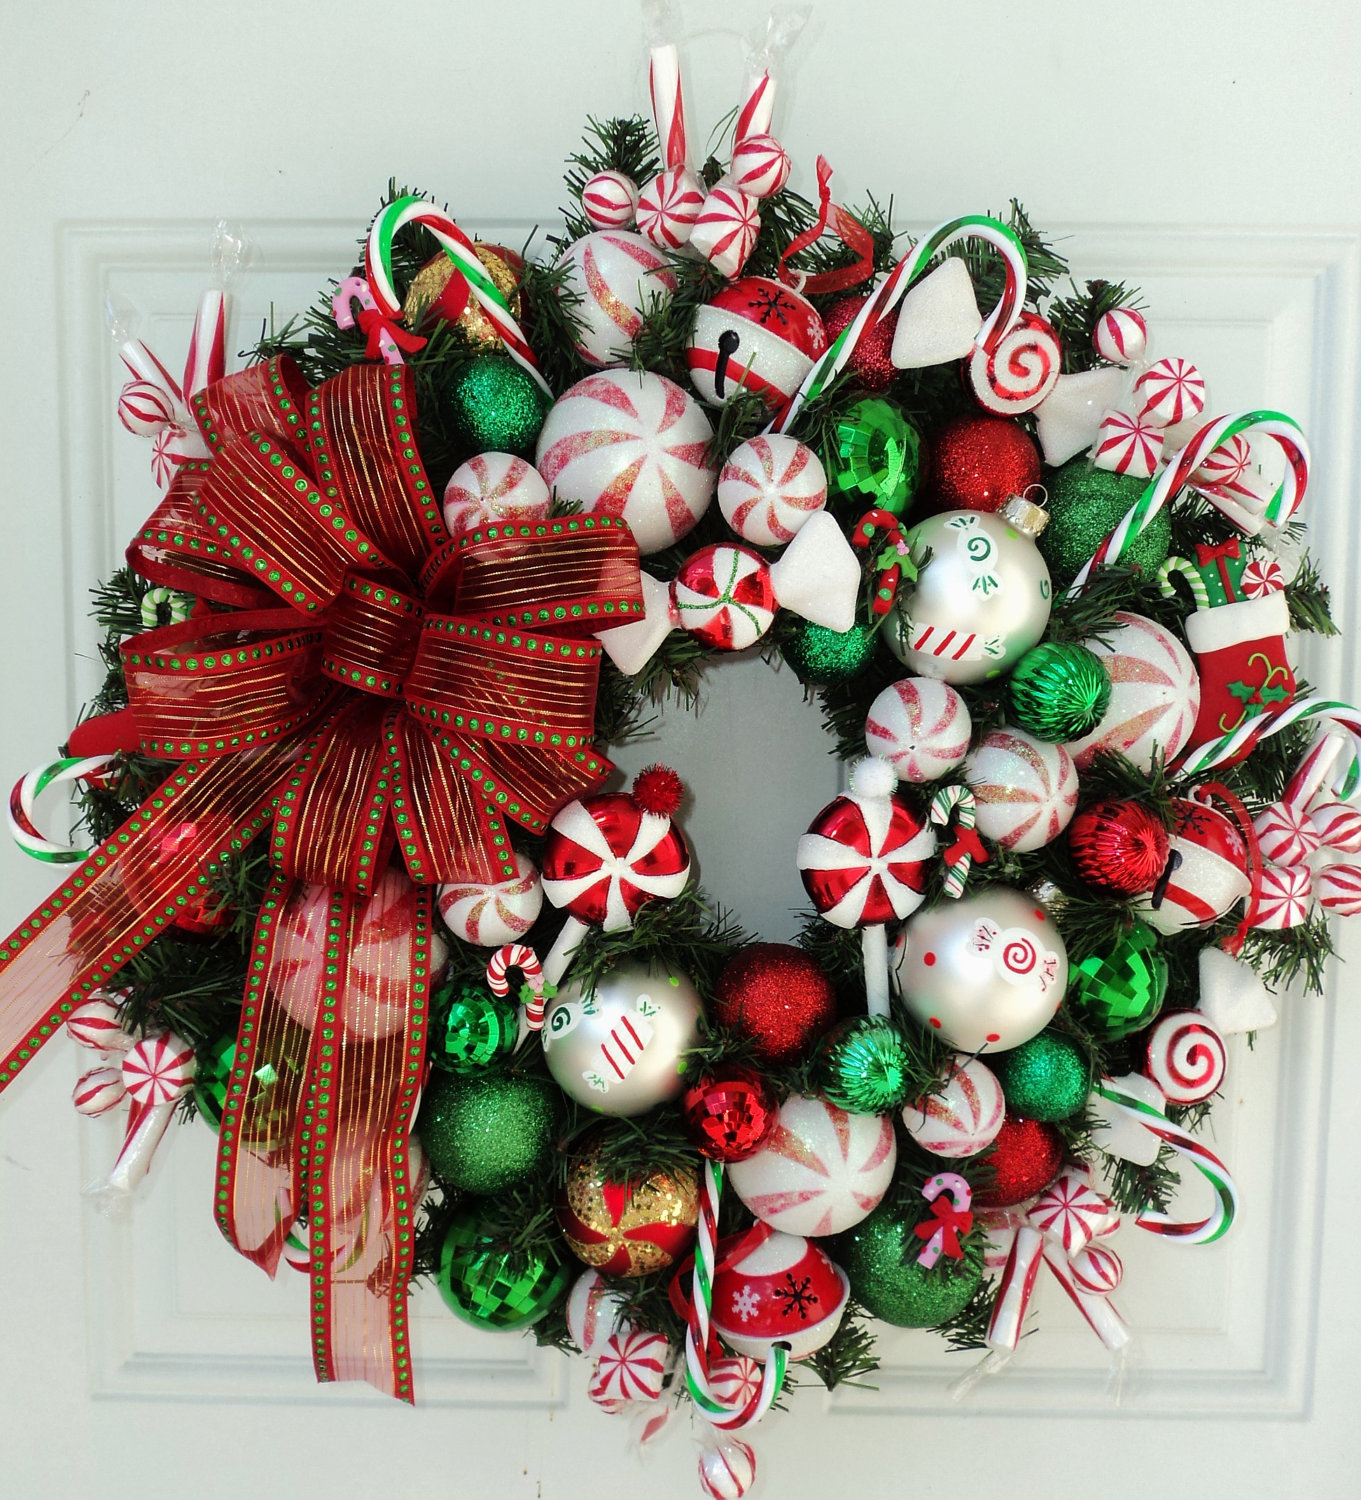 Make a diy christmas wreaths yourself to celebrate the holiday diy christmas wreaths 8 solutioingenieria Images